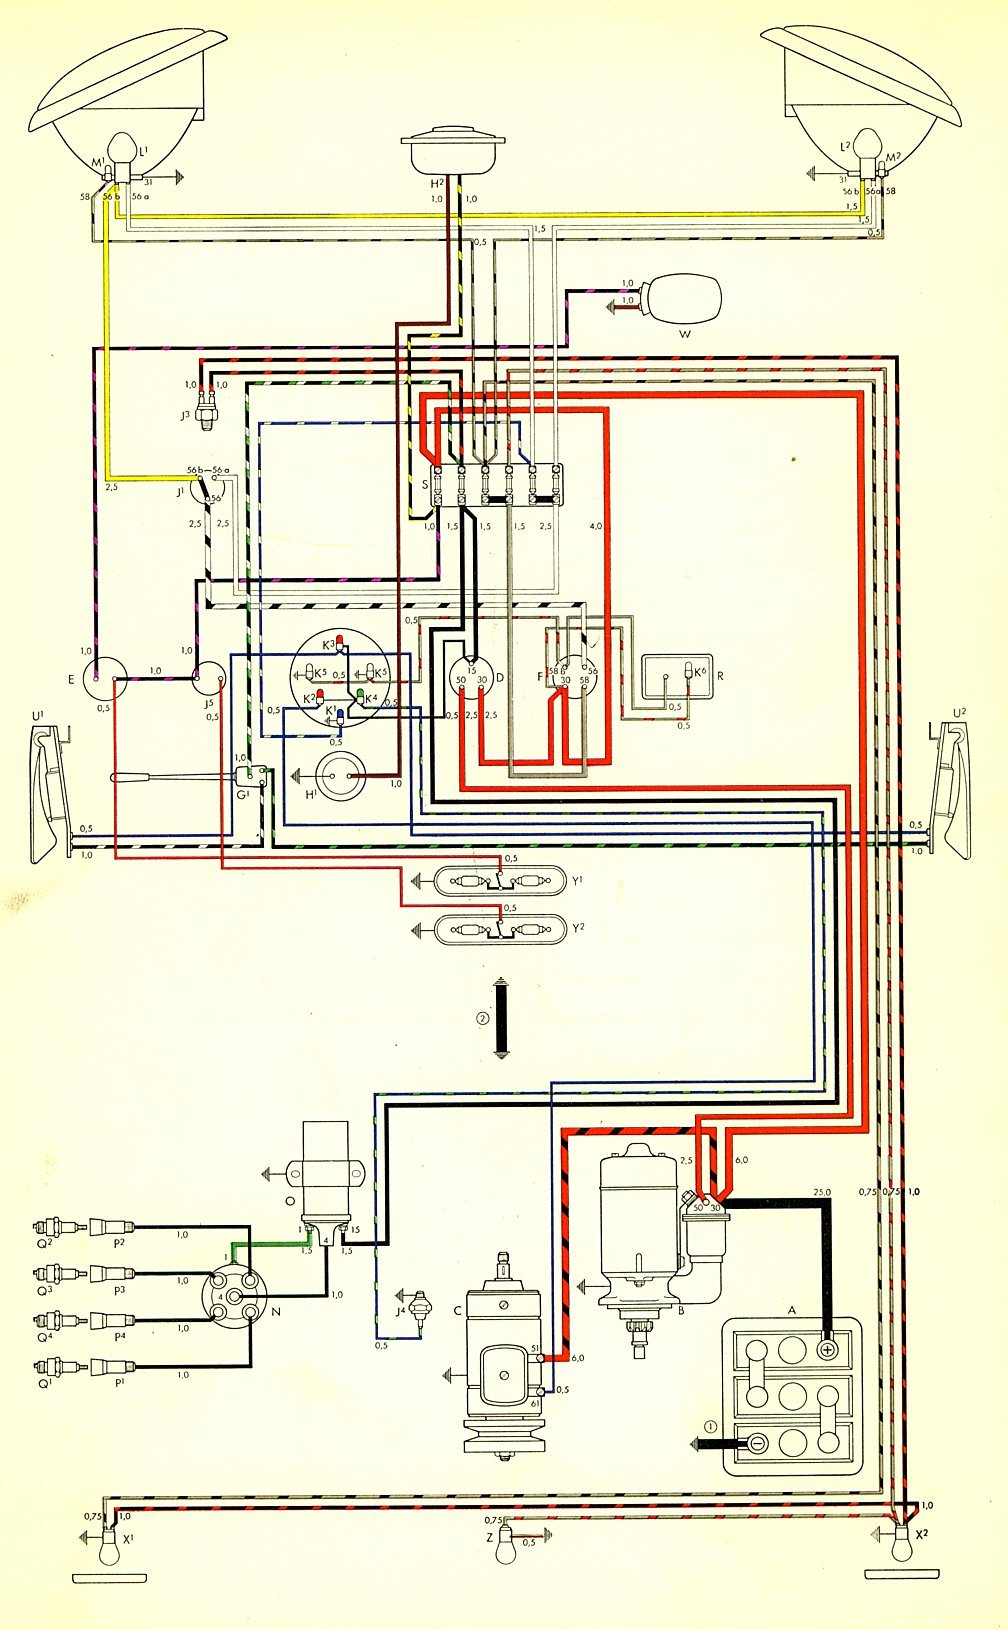 wiring diagram for 1964 vw bus 6 smo zionsnowboards de \u2022